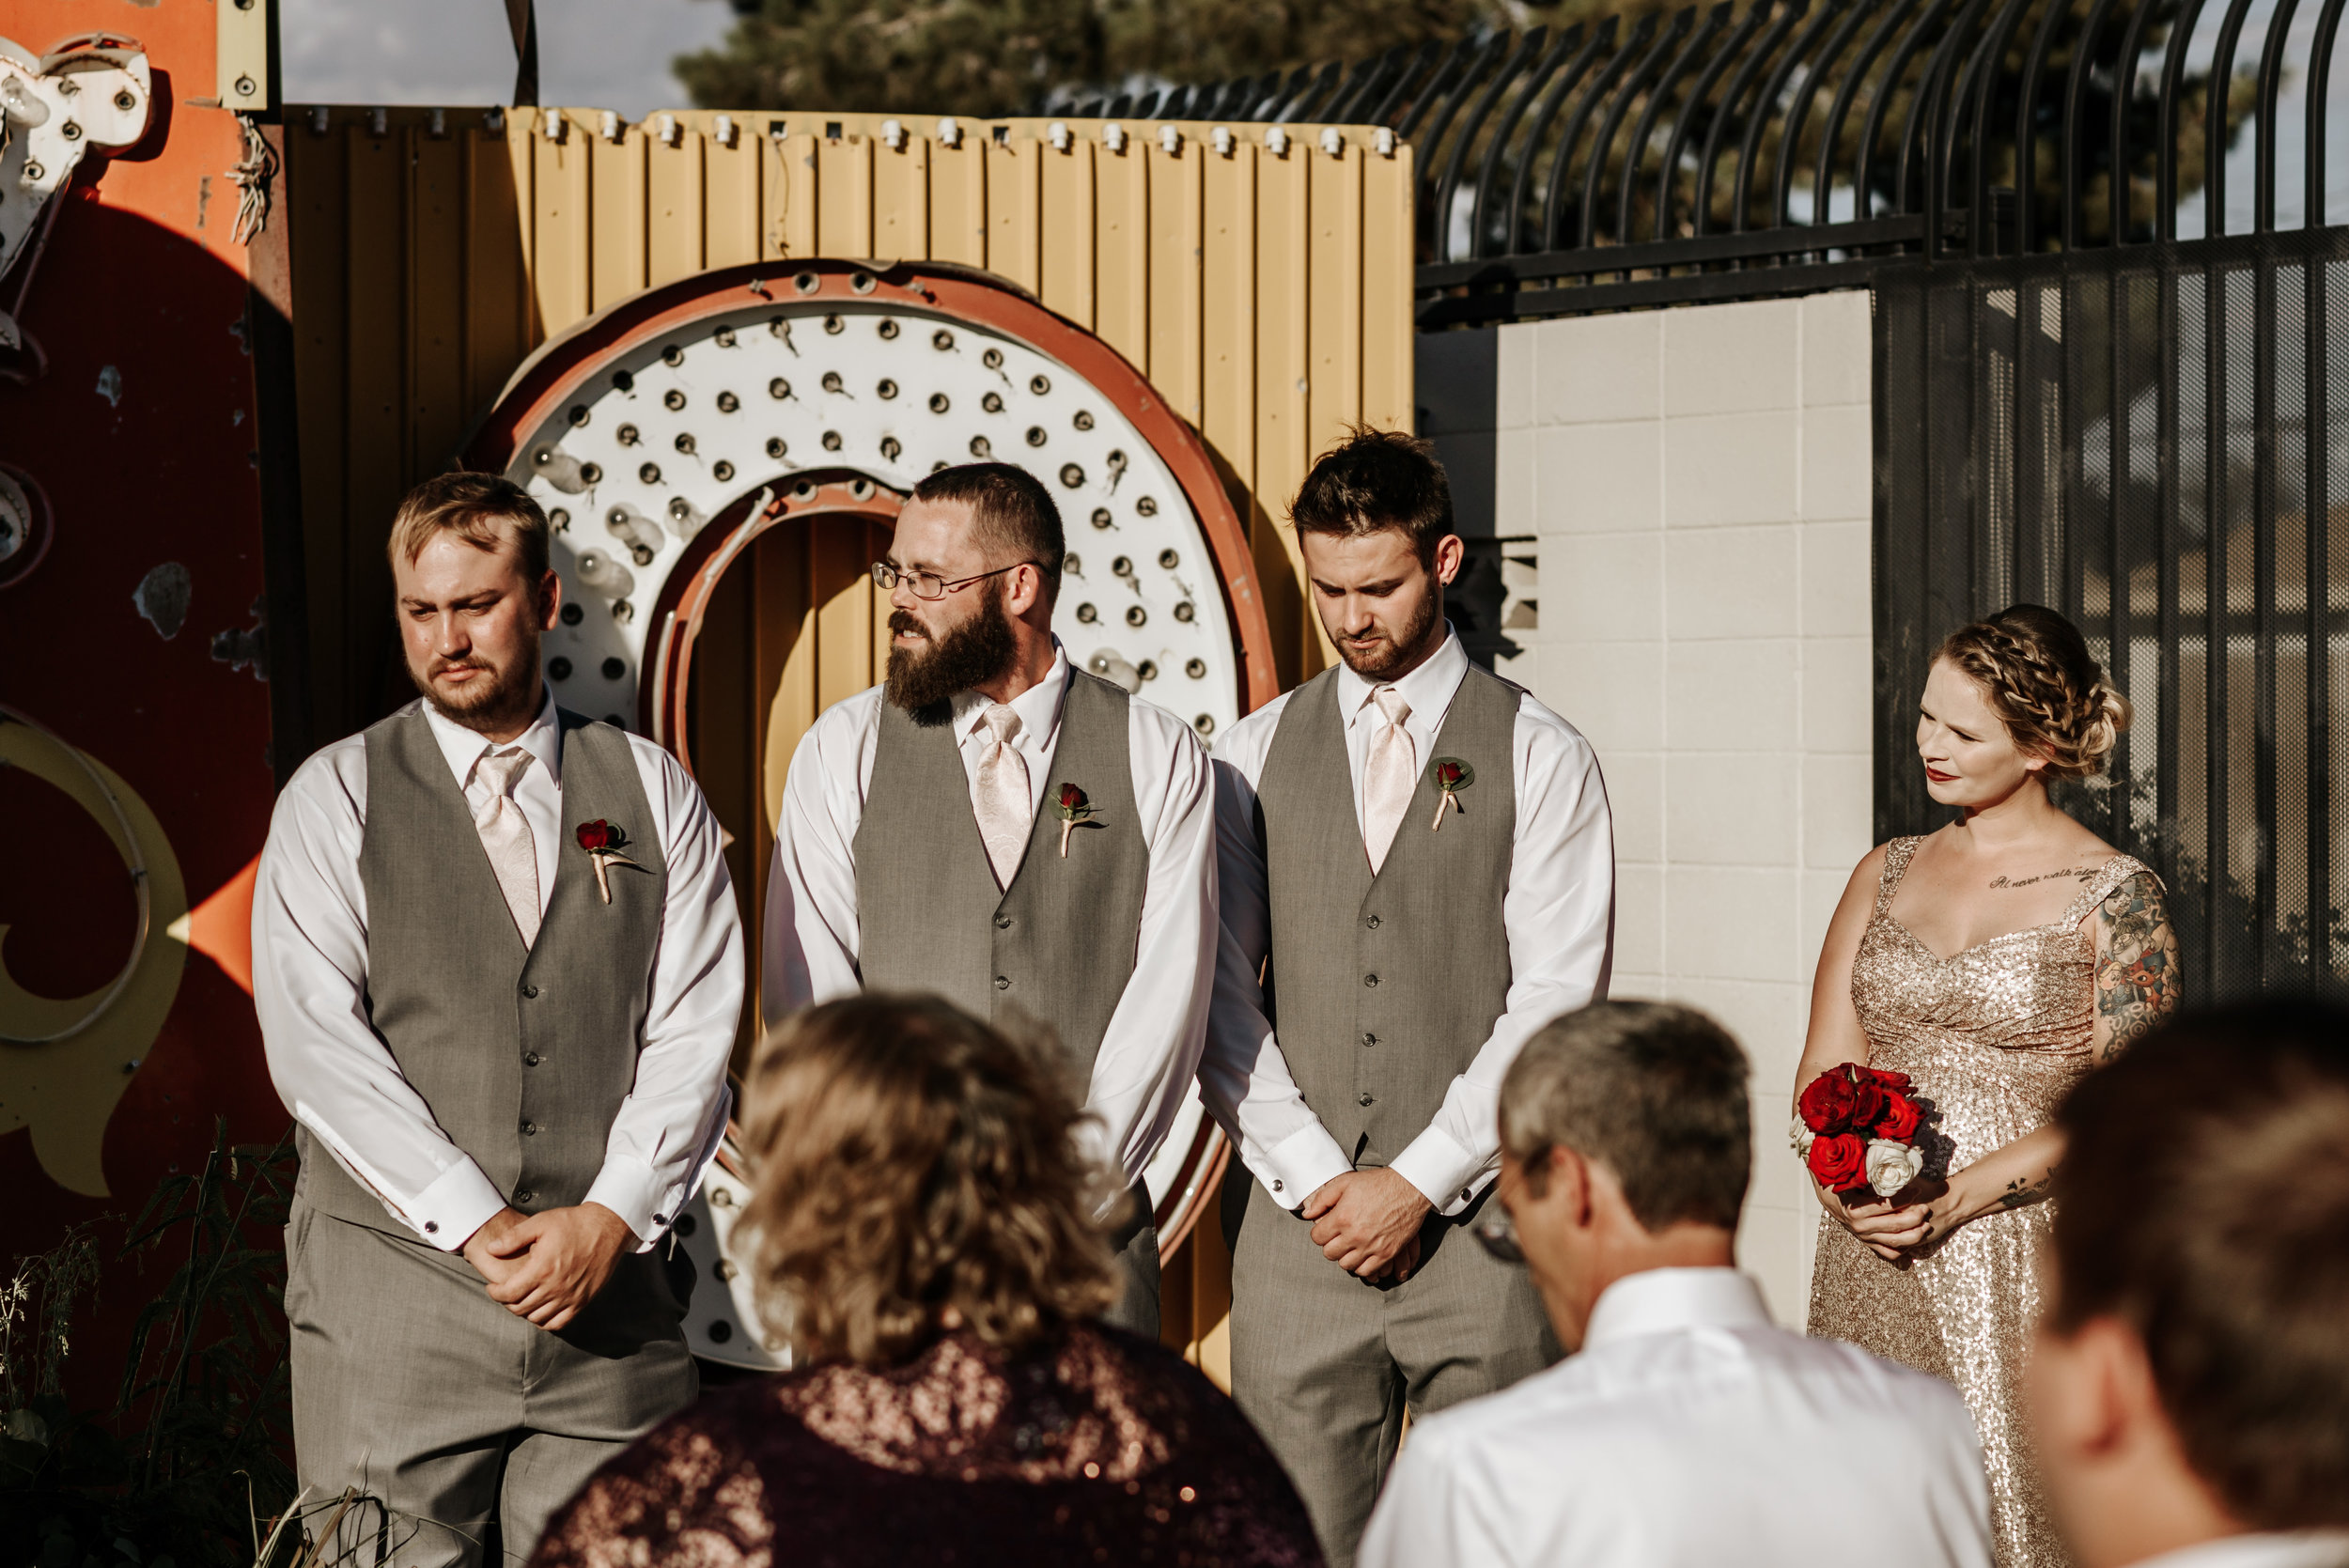 Neon-Museum-Wedding-Las-Vegas-Nevada-Golden-Nugget-Photography-by-V-Ally-and-Dan-6578.jpg